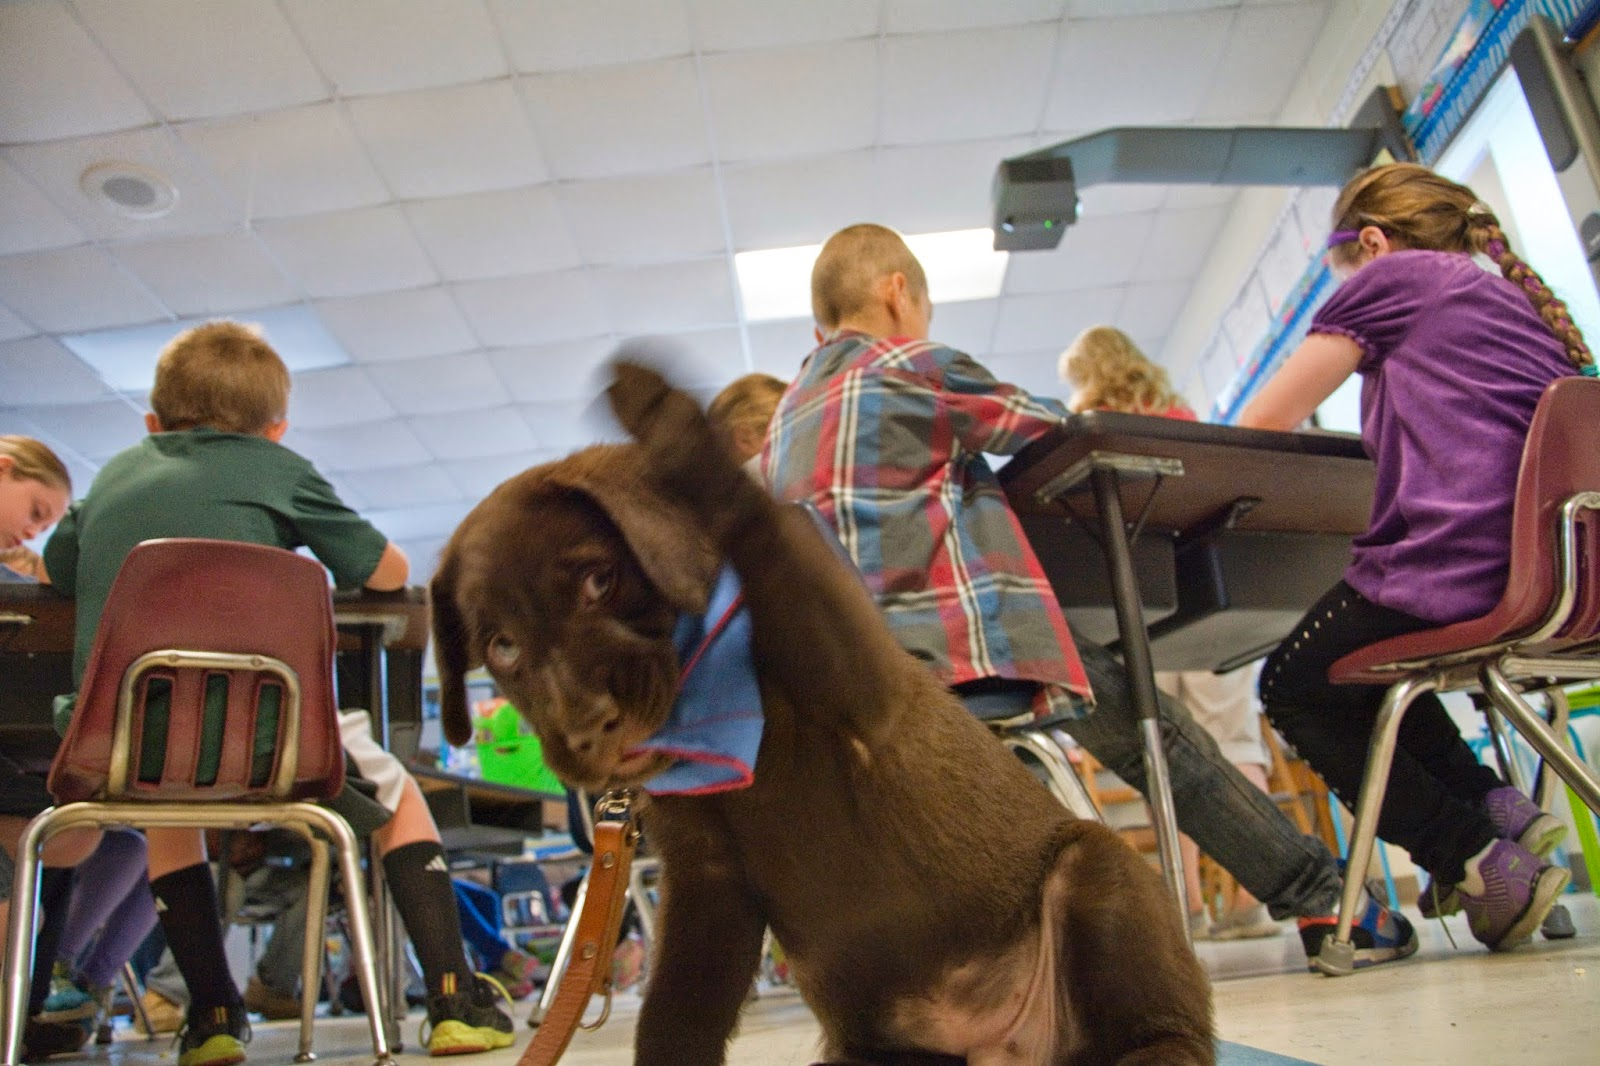 The small chocolate lab is reaching up with his left from paw while he is sitting by the second-graders. The kids are behind him at their tables.